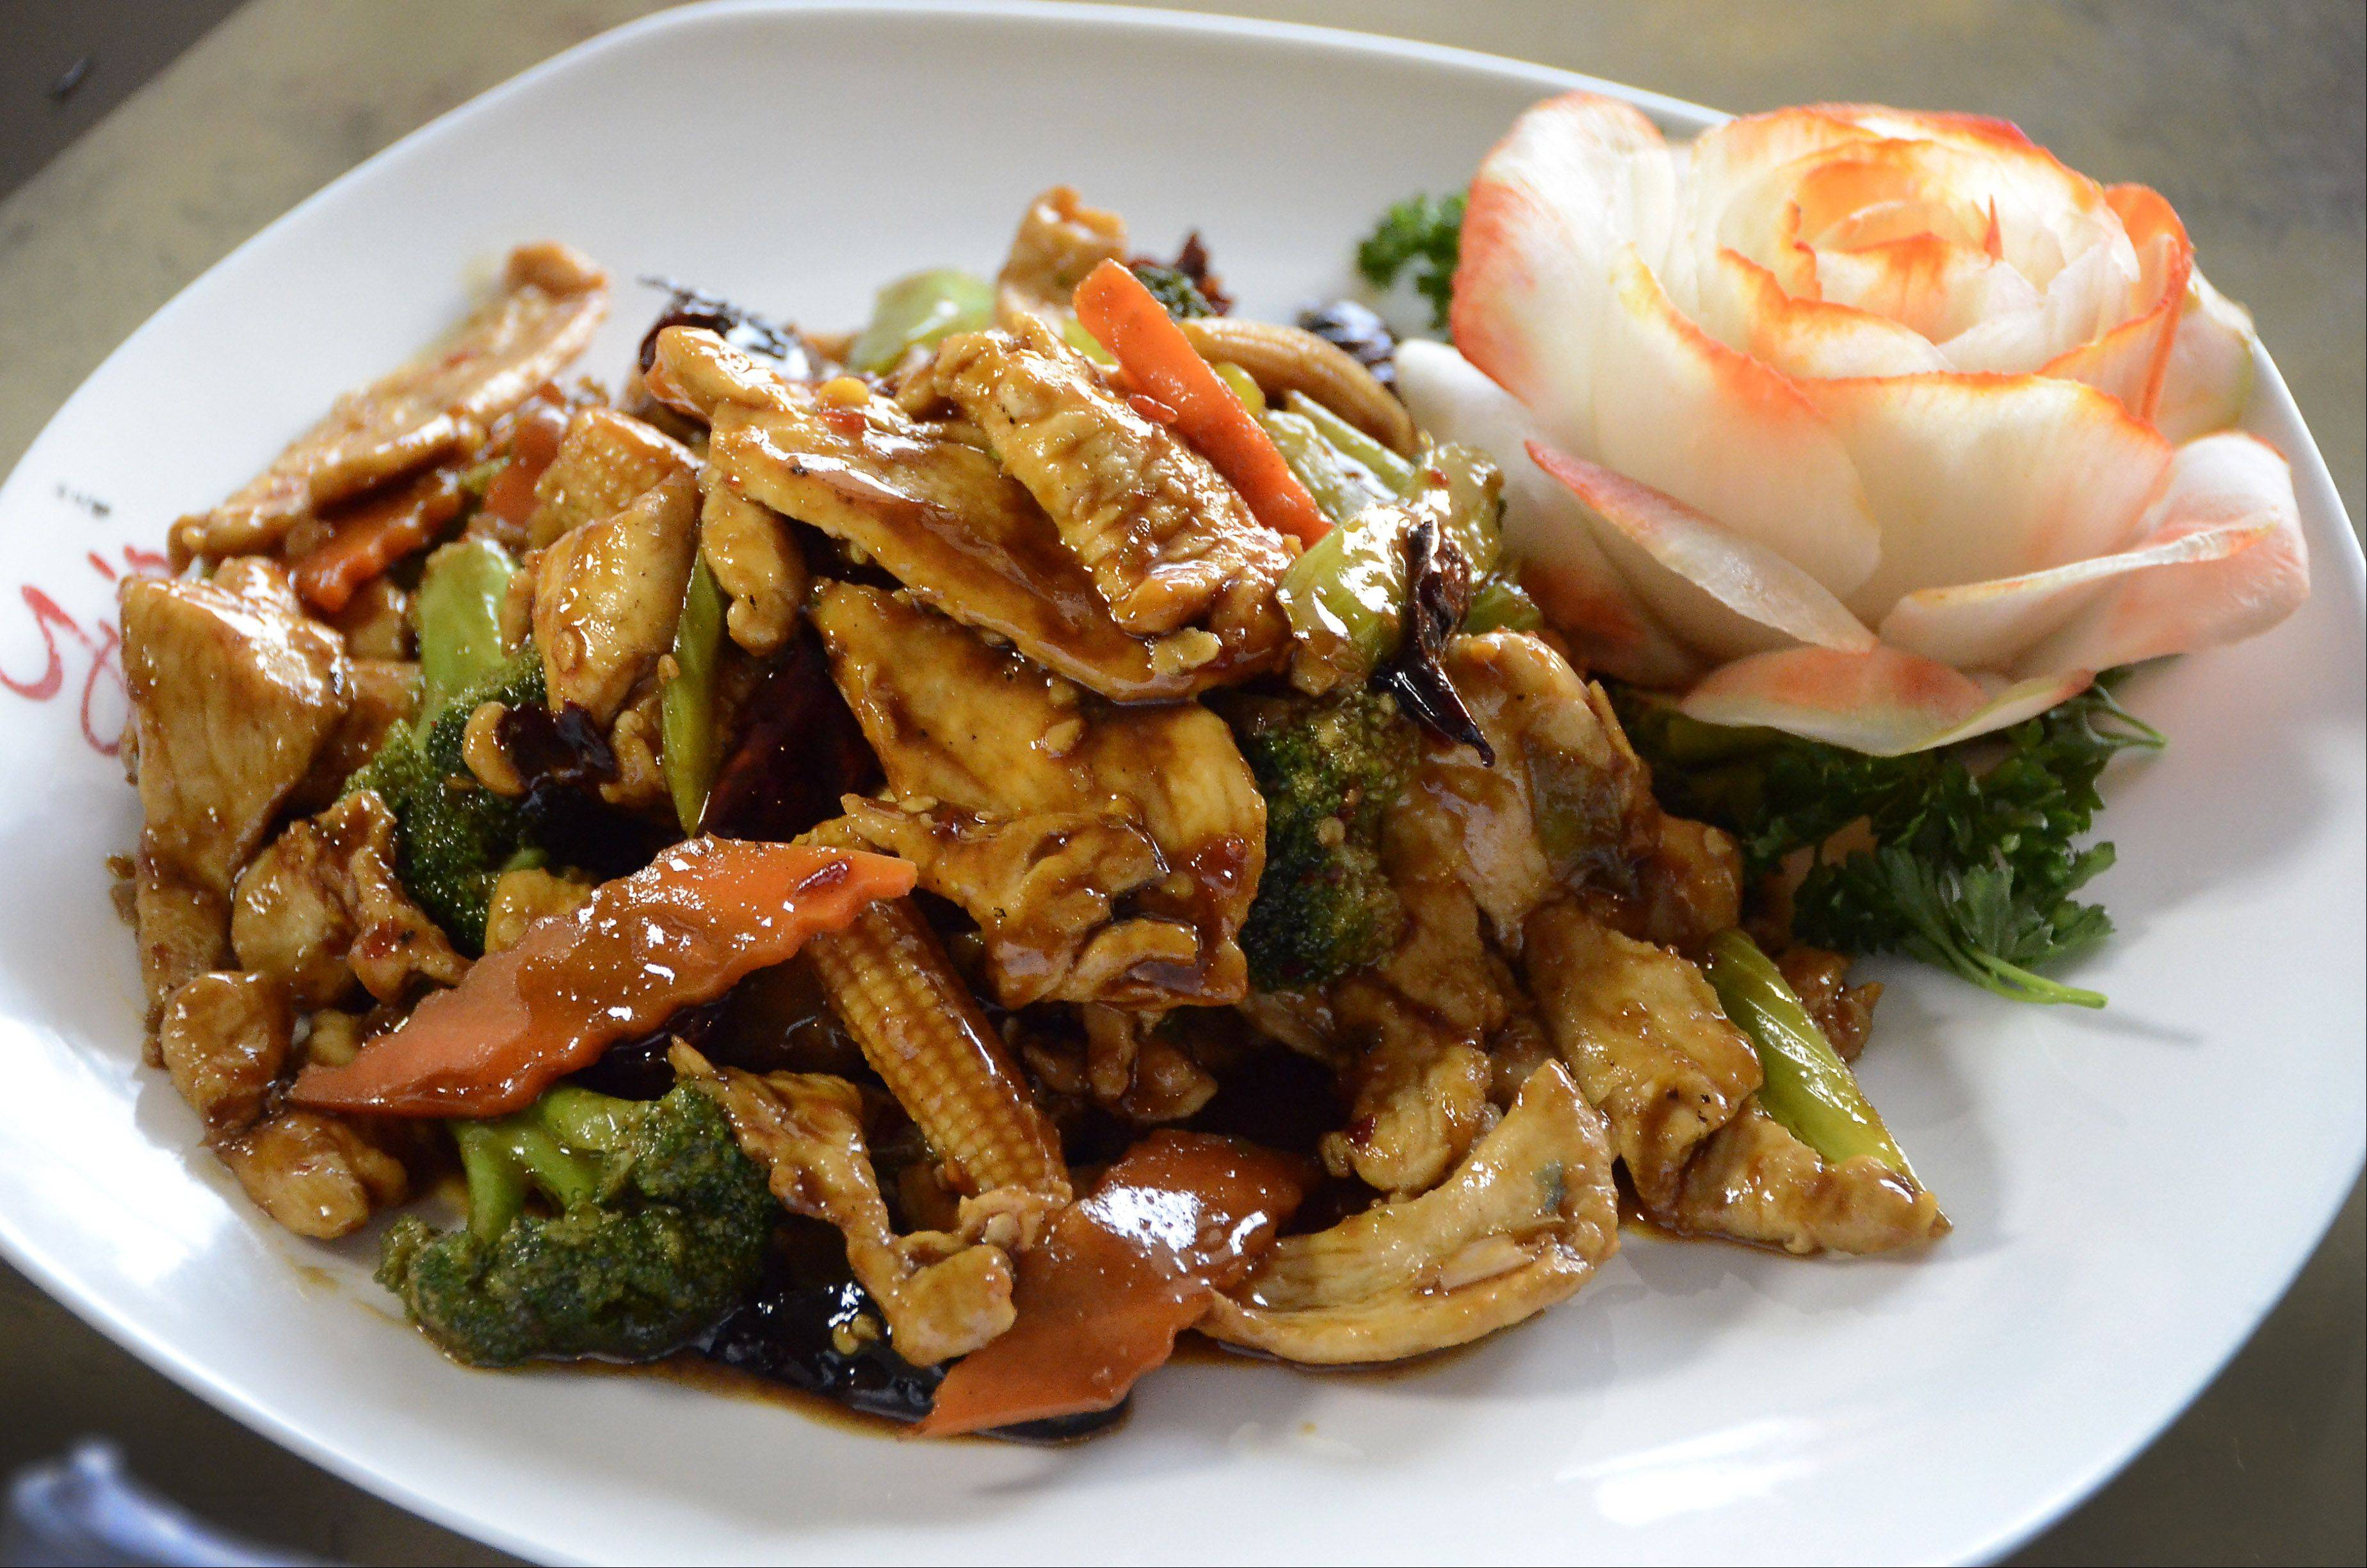 The Hunan Chicken is just one of many authentic Chinese dishes on the menu at Yu's Mandarin in Schaumburg.